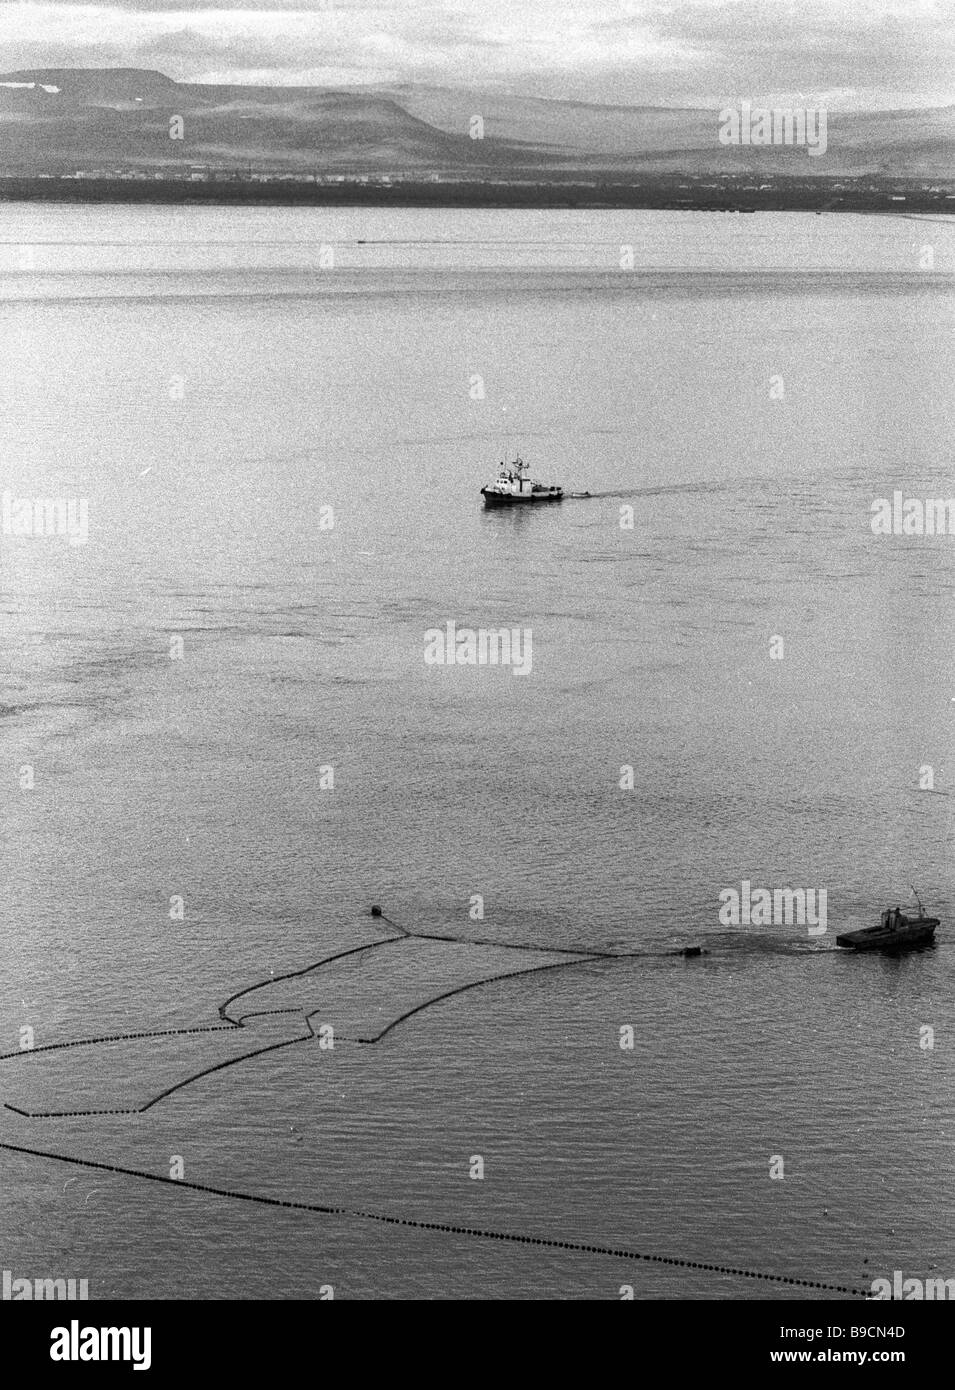 Fishing vessels in Anadyr lagoon - Stock Image